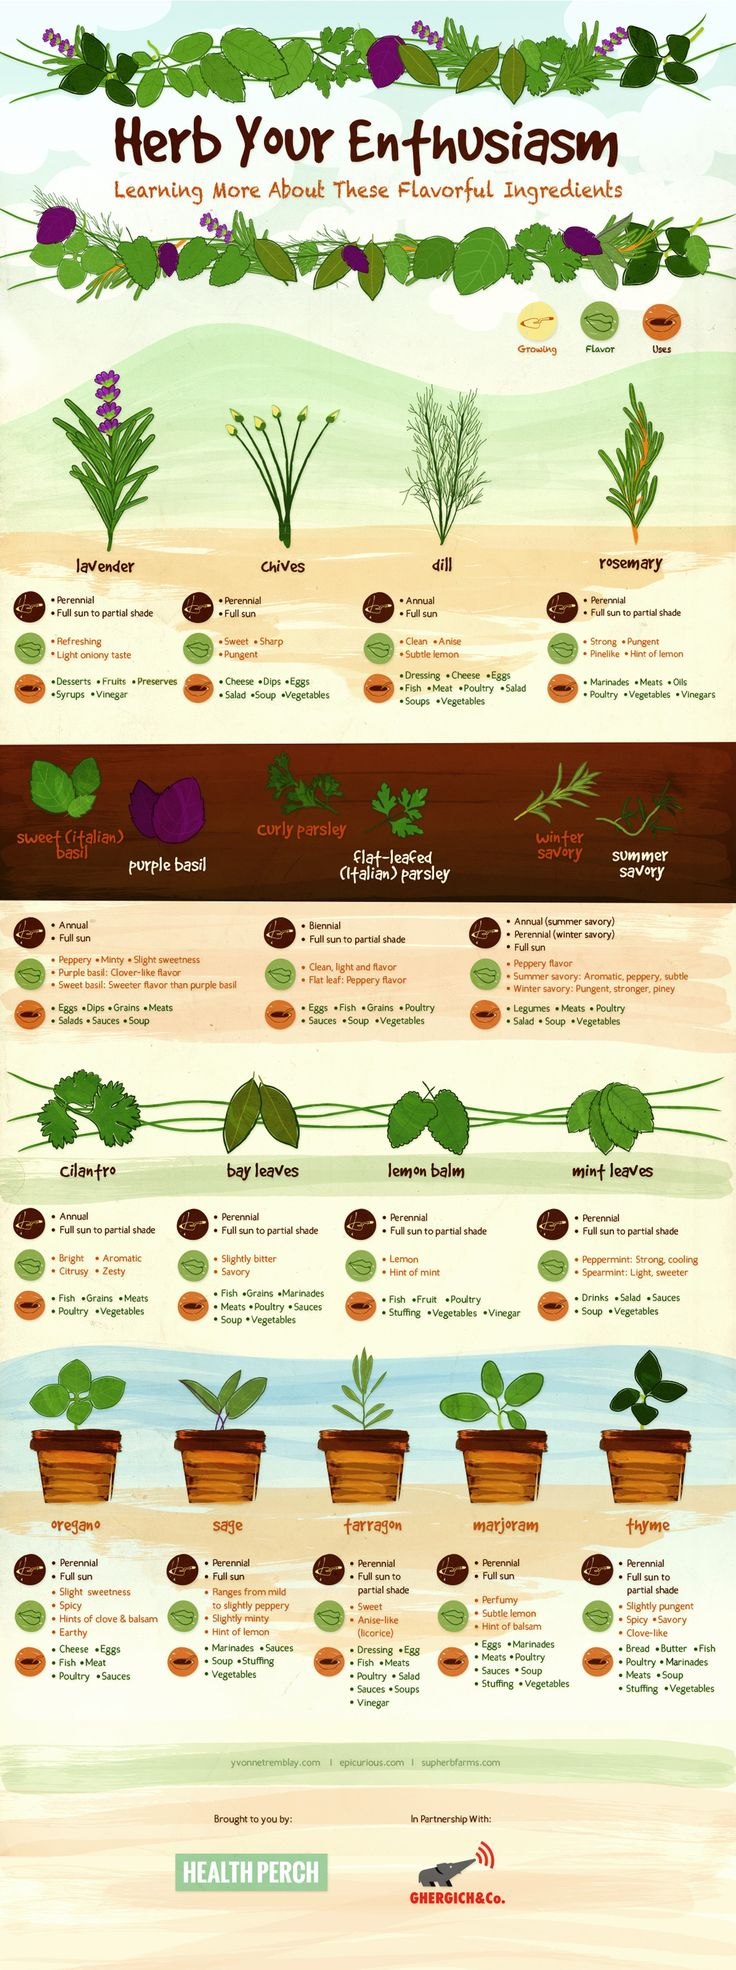 Herb Your Enthusiasm - Growing herbs indoors is an easy way to bring the feeling of spring into your home throughout the year. Here are some tips that can help you enjoy the many delicious benefits of fresh herbs. This chart is great to have on hand as a resource for not only growing herbs, but the flavors each adds to a dish, and even suggestions for yummy pairings.